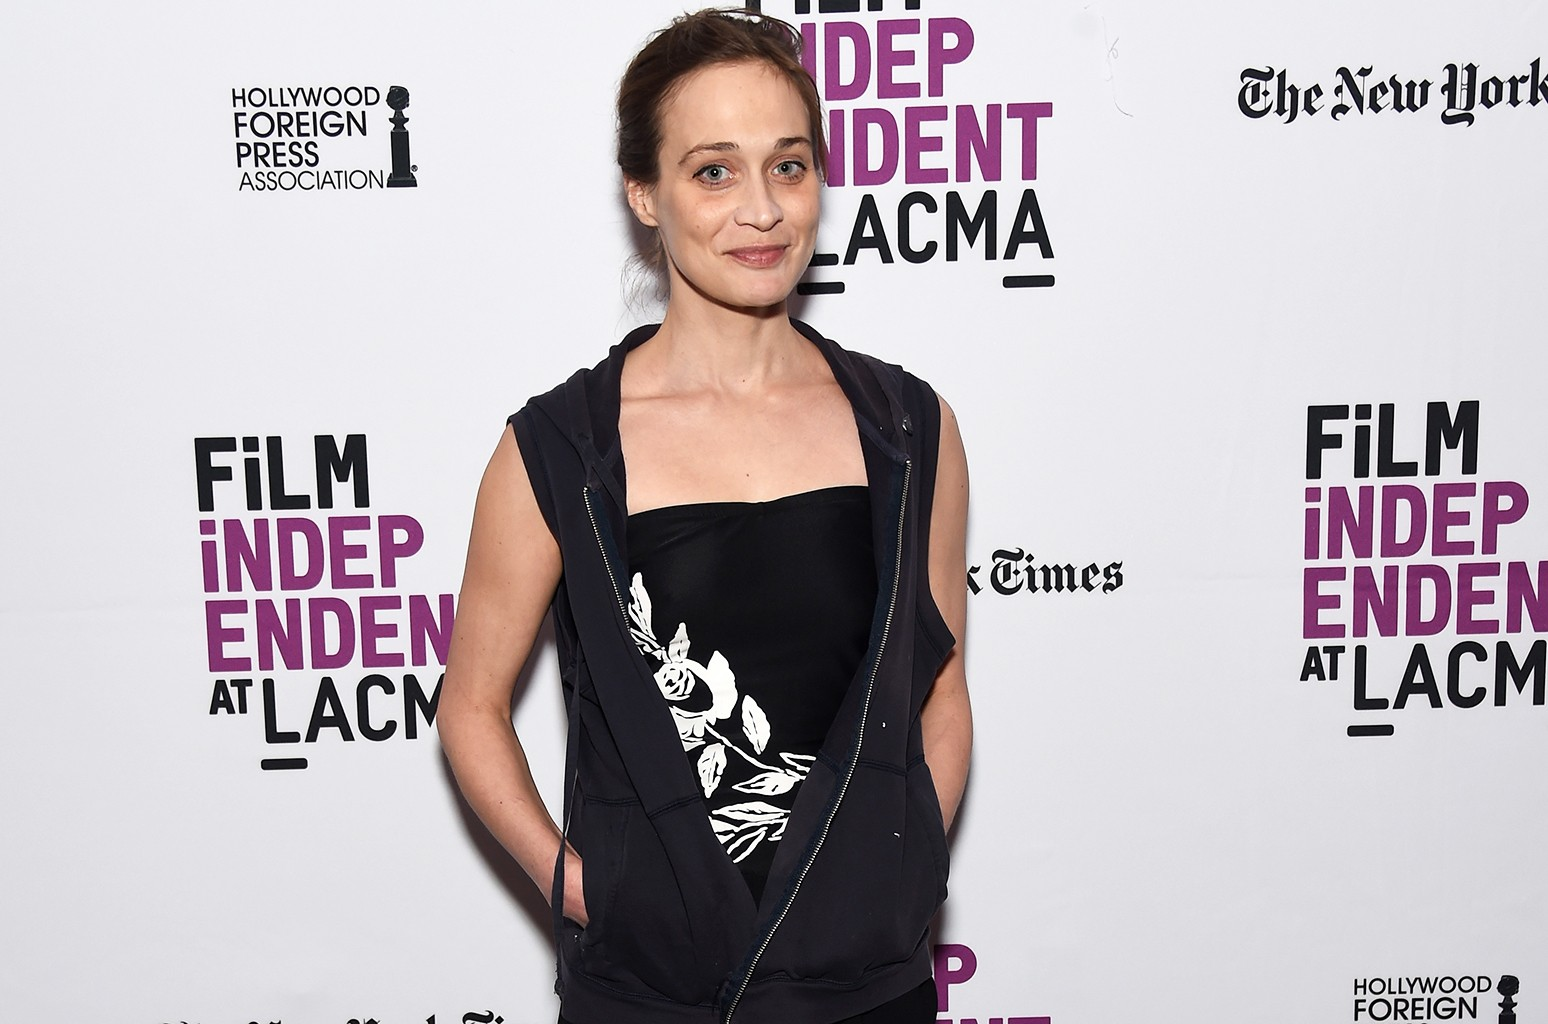 Fiona Apple at the Bing Theatre at LACMA on Jan. 21, 2016 in Los Angeles.